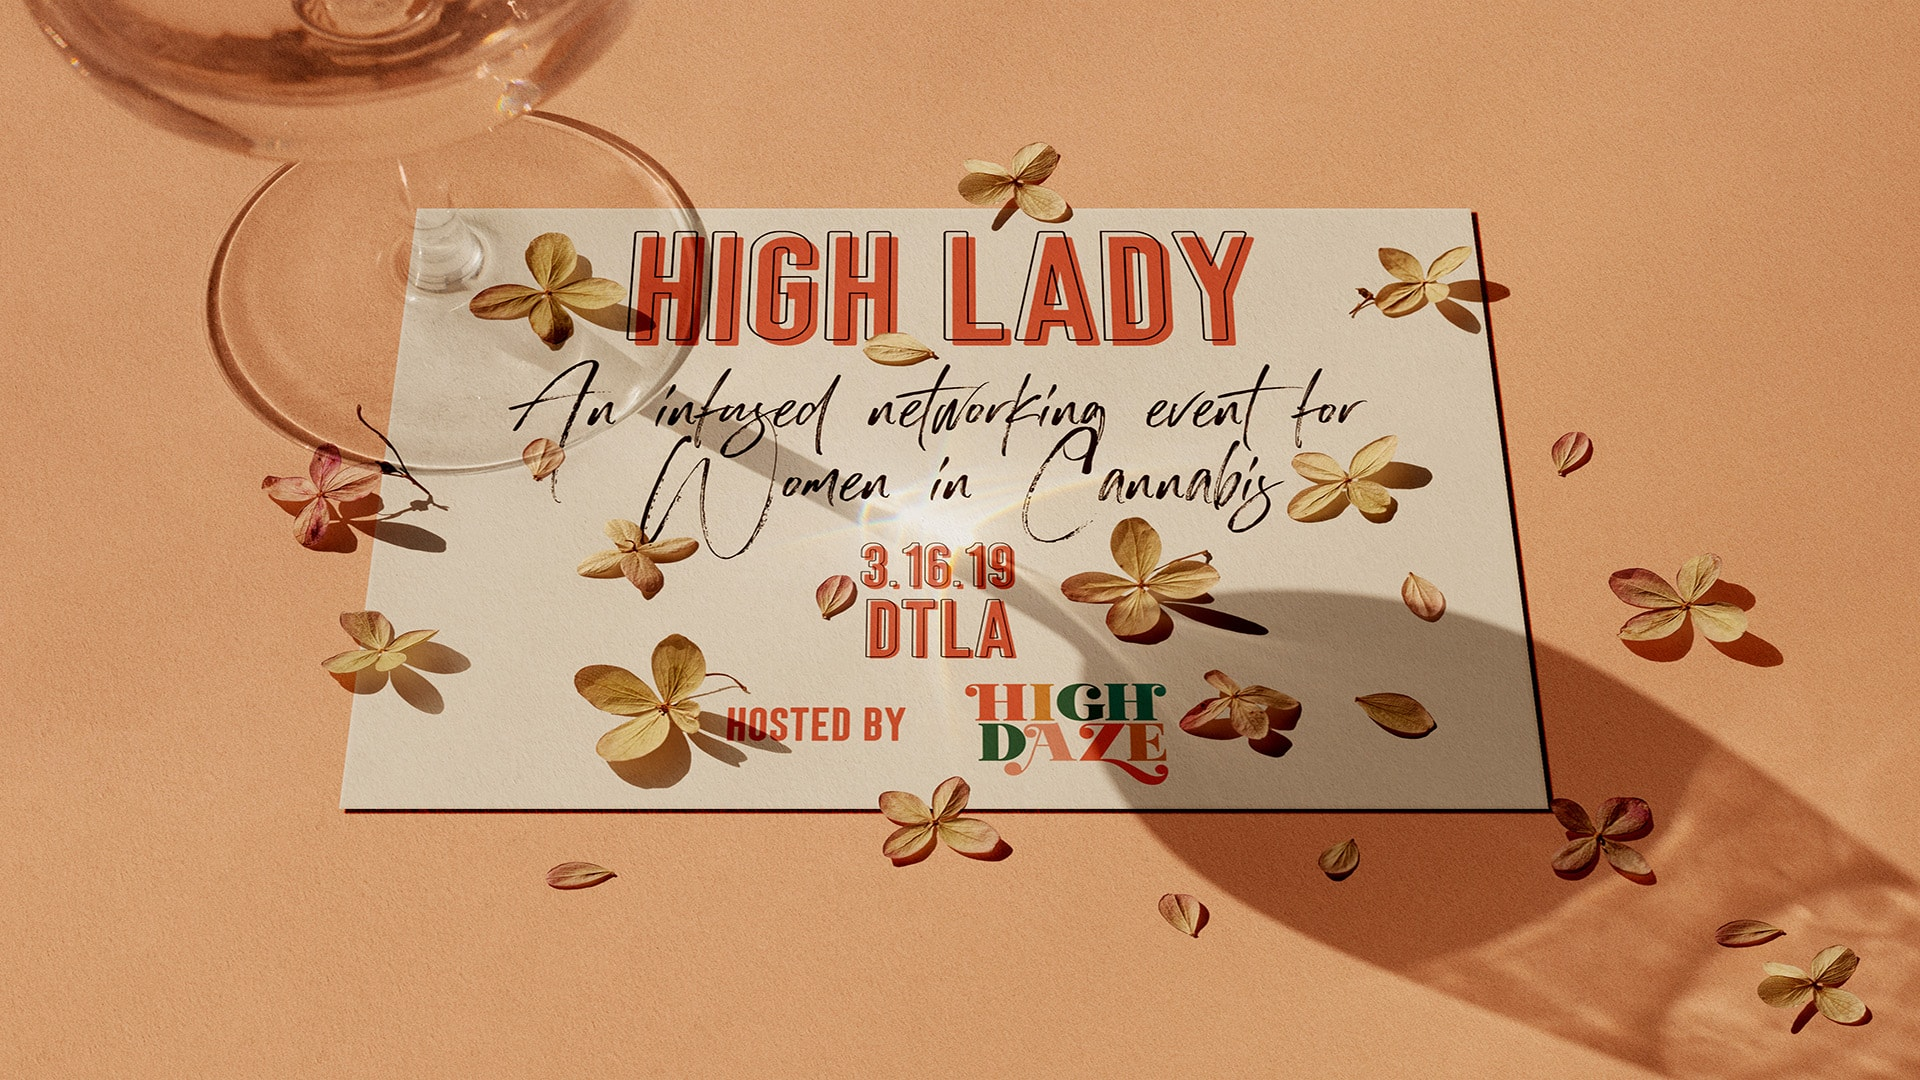 High Lady - Infused Networking For Women In Cannabis